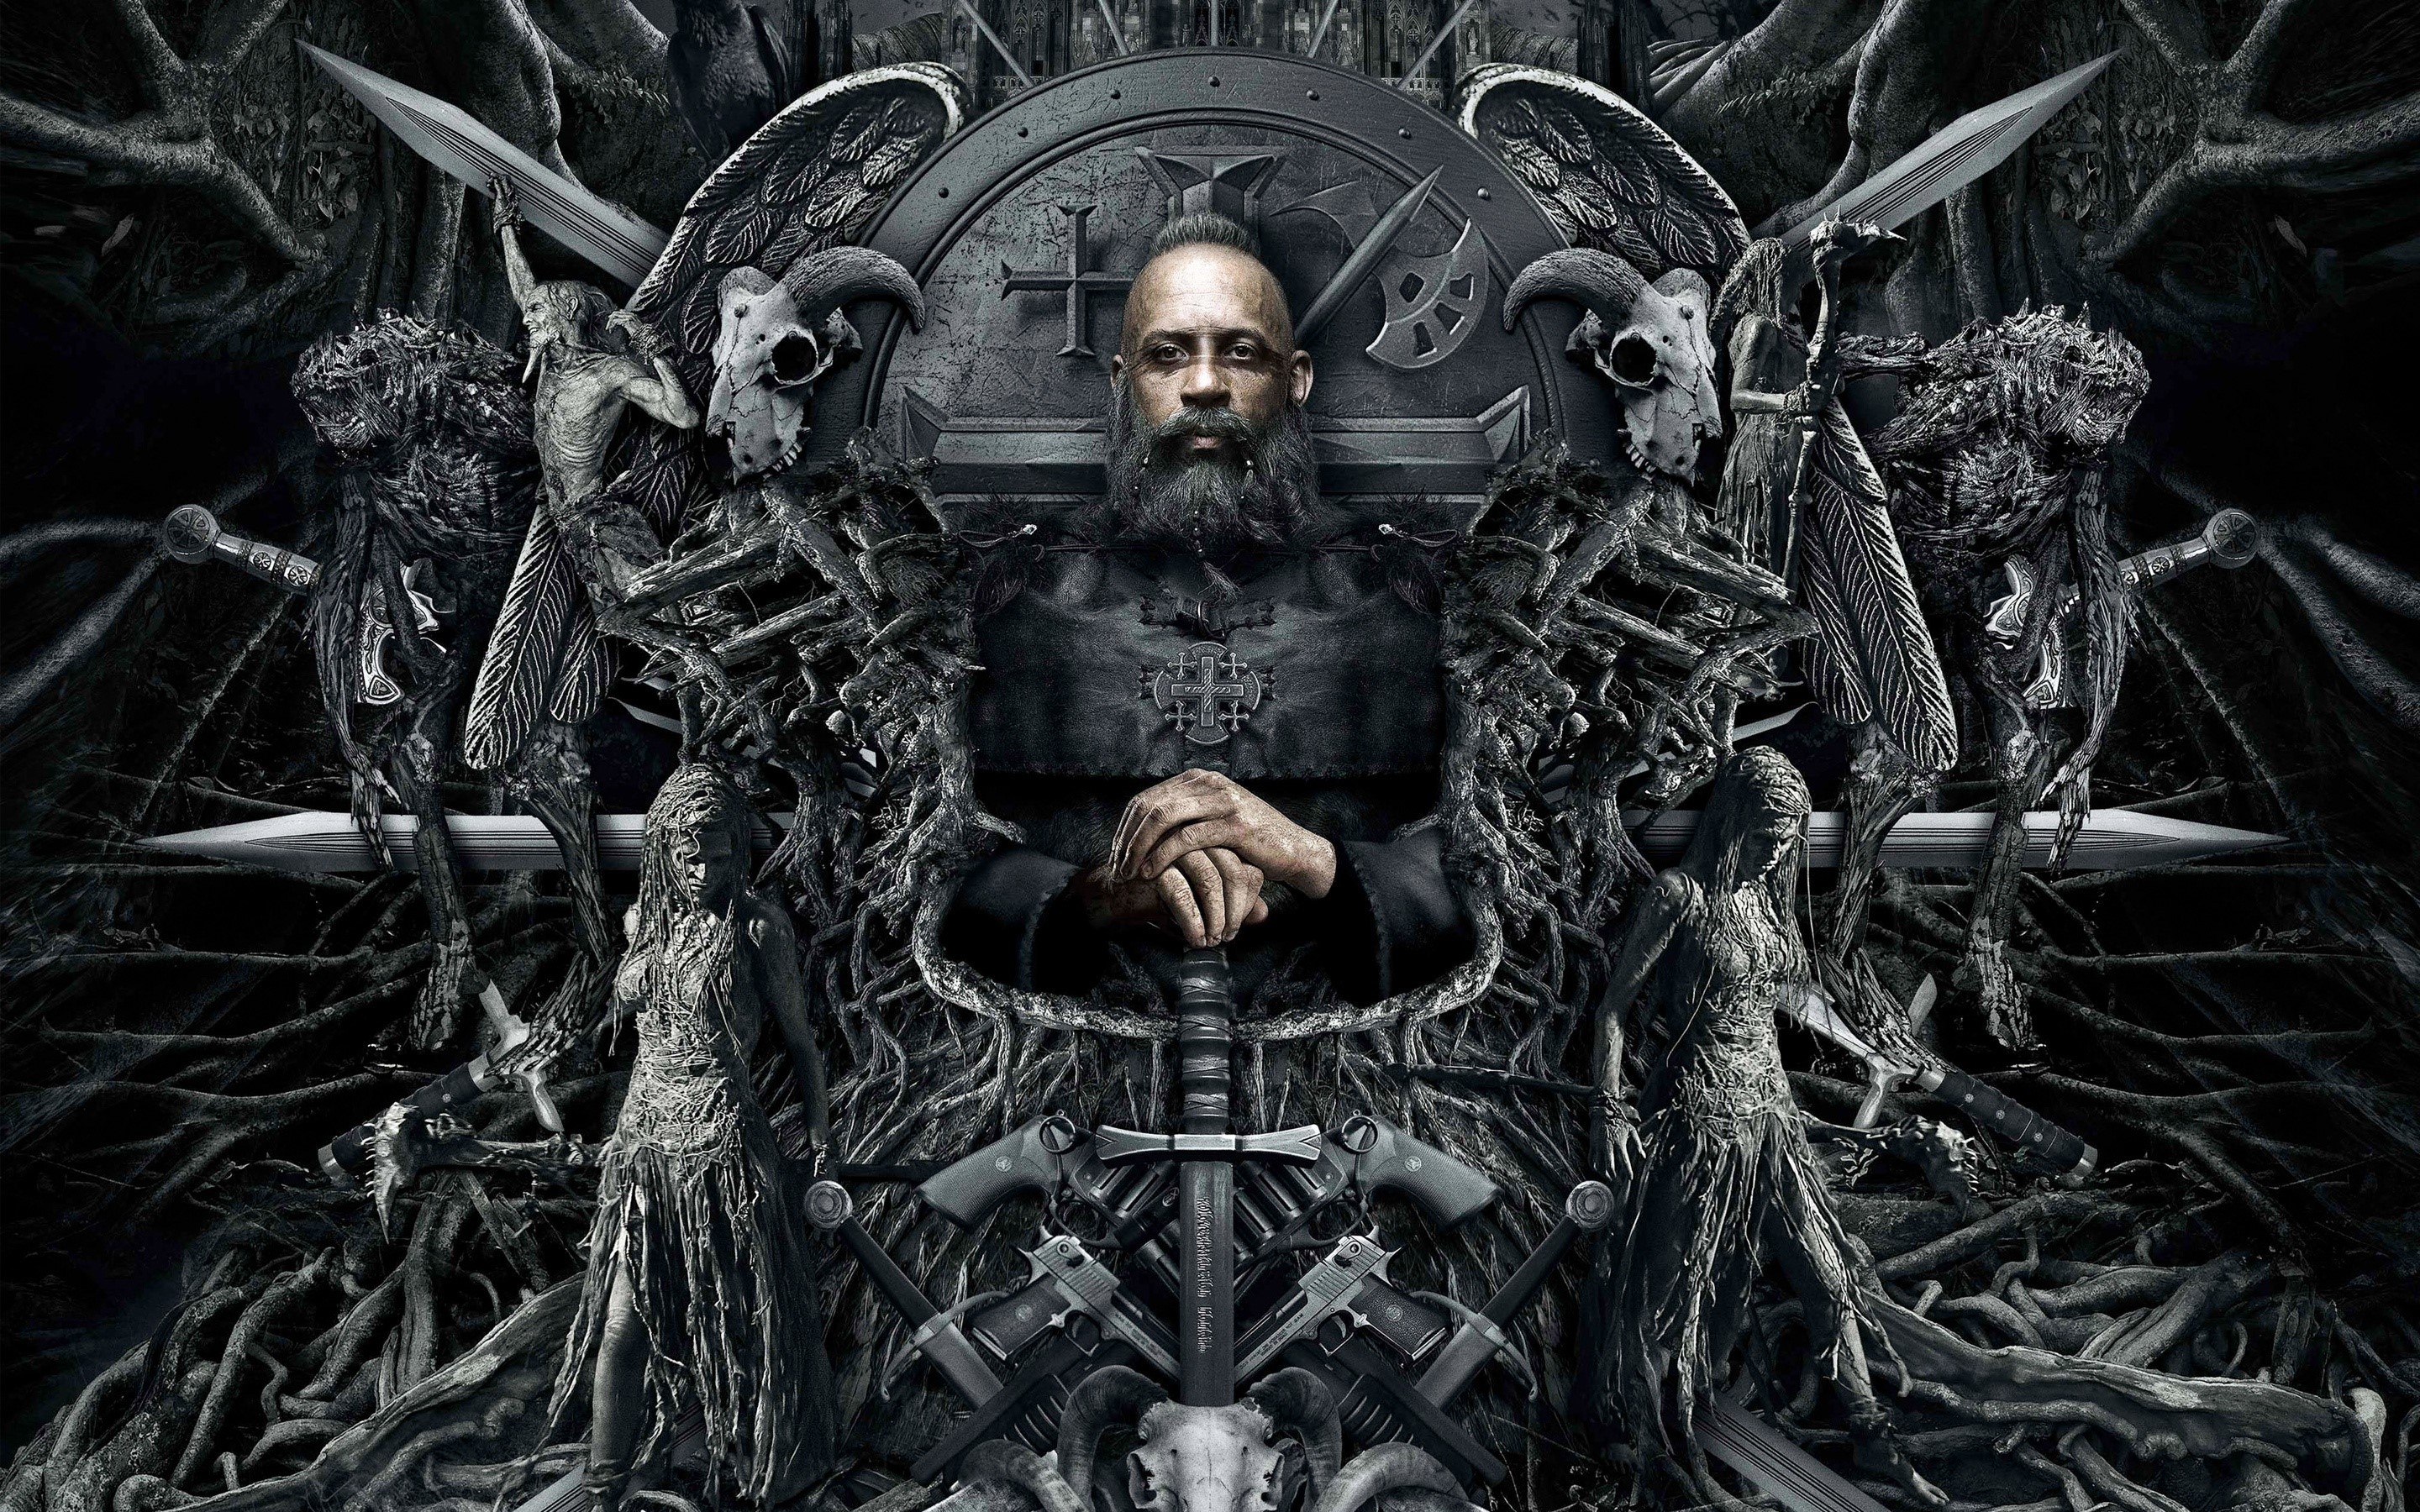 Fondos de pantalla Diesel en The Last Witch Hunter